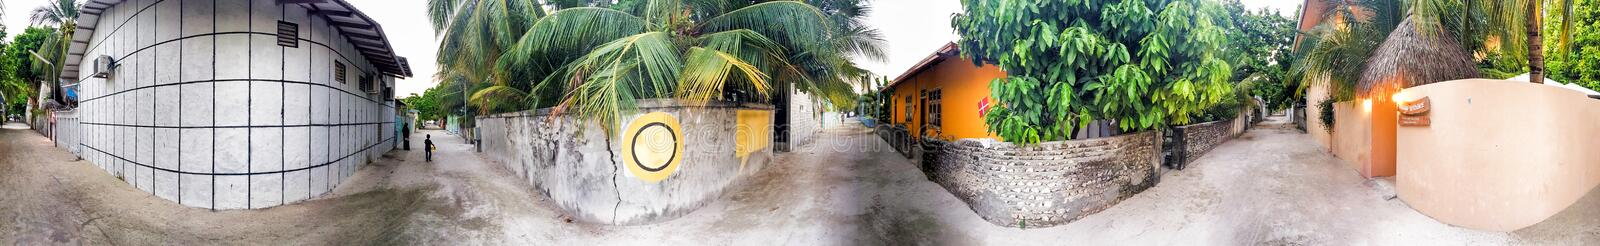 Panoramic view of Maldivian Island streets.  royalty free stock photo